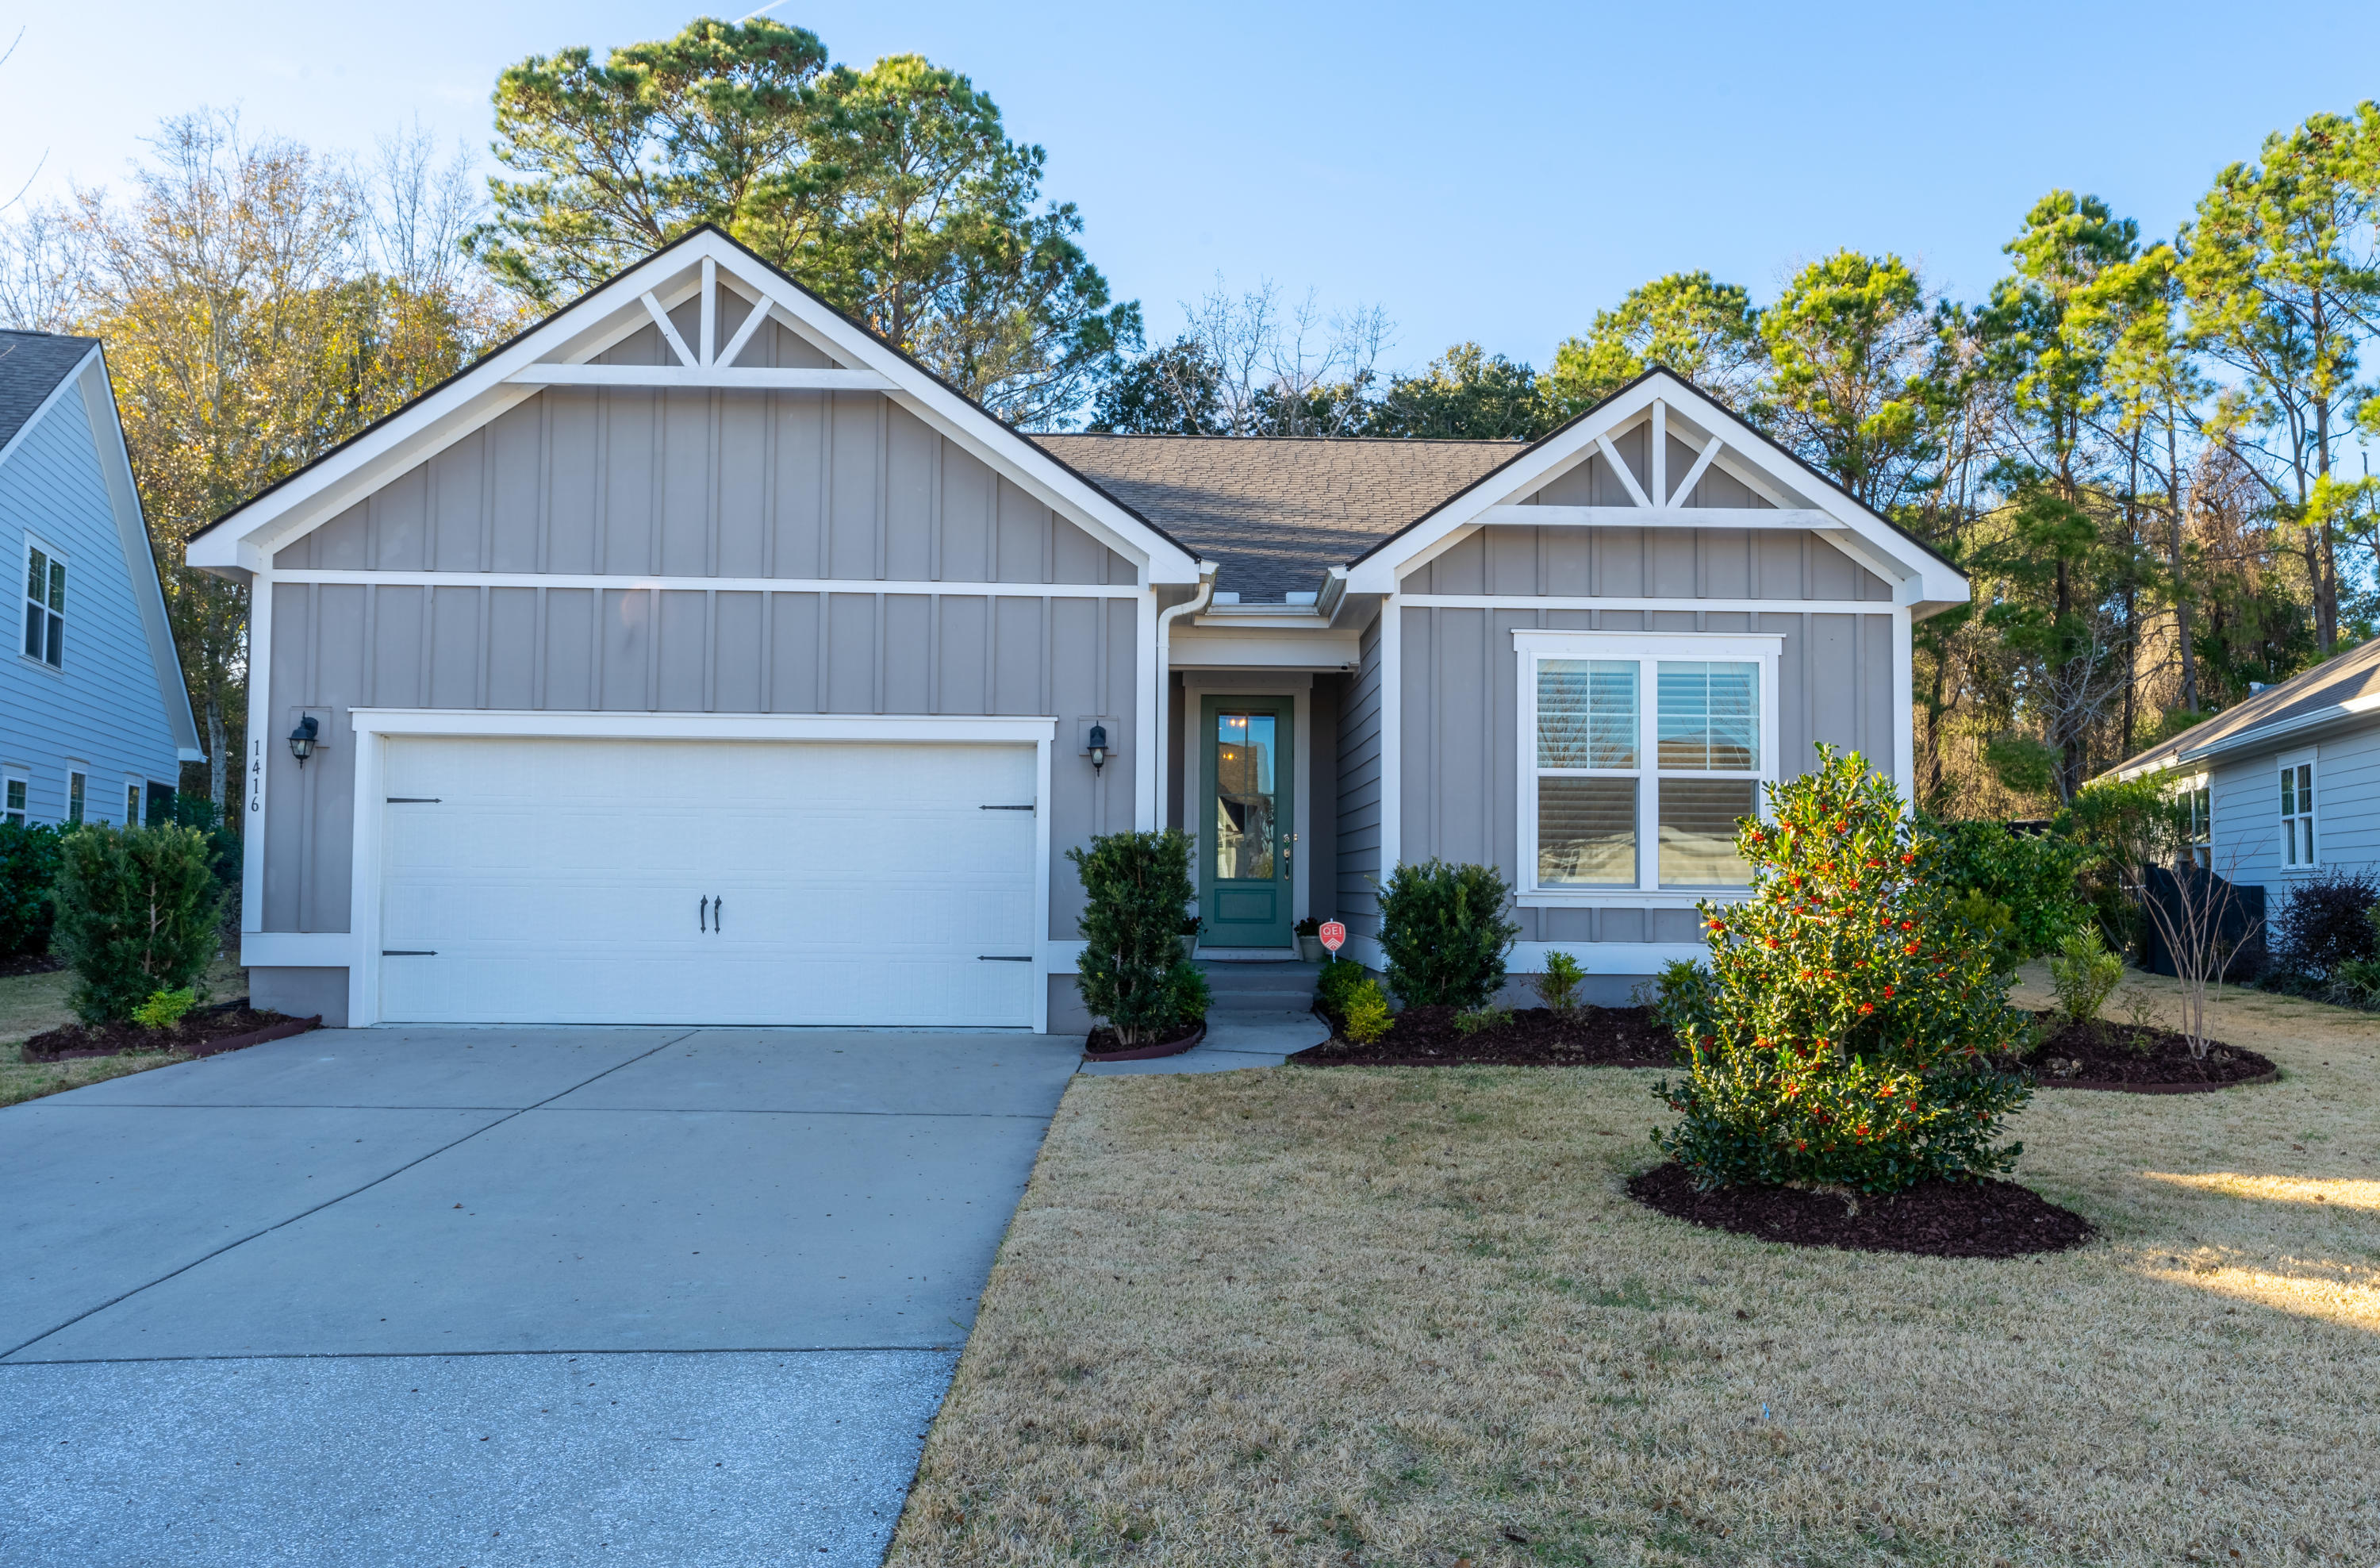 Oyster Point Homes For Sale - 1416 Longspur, Mount Pleasant, SC - 59